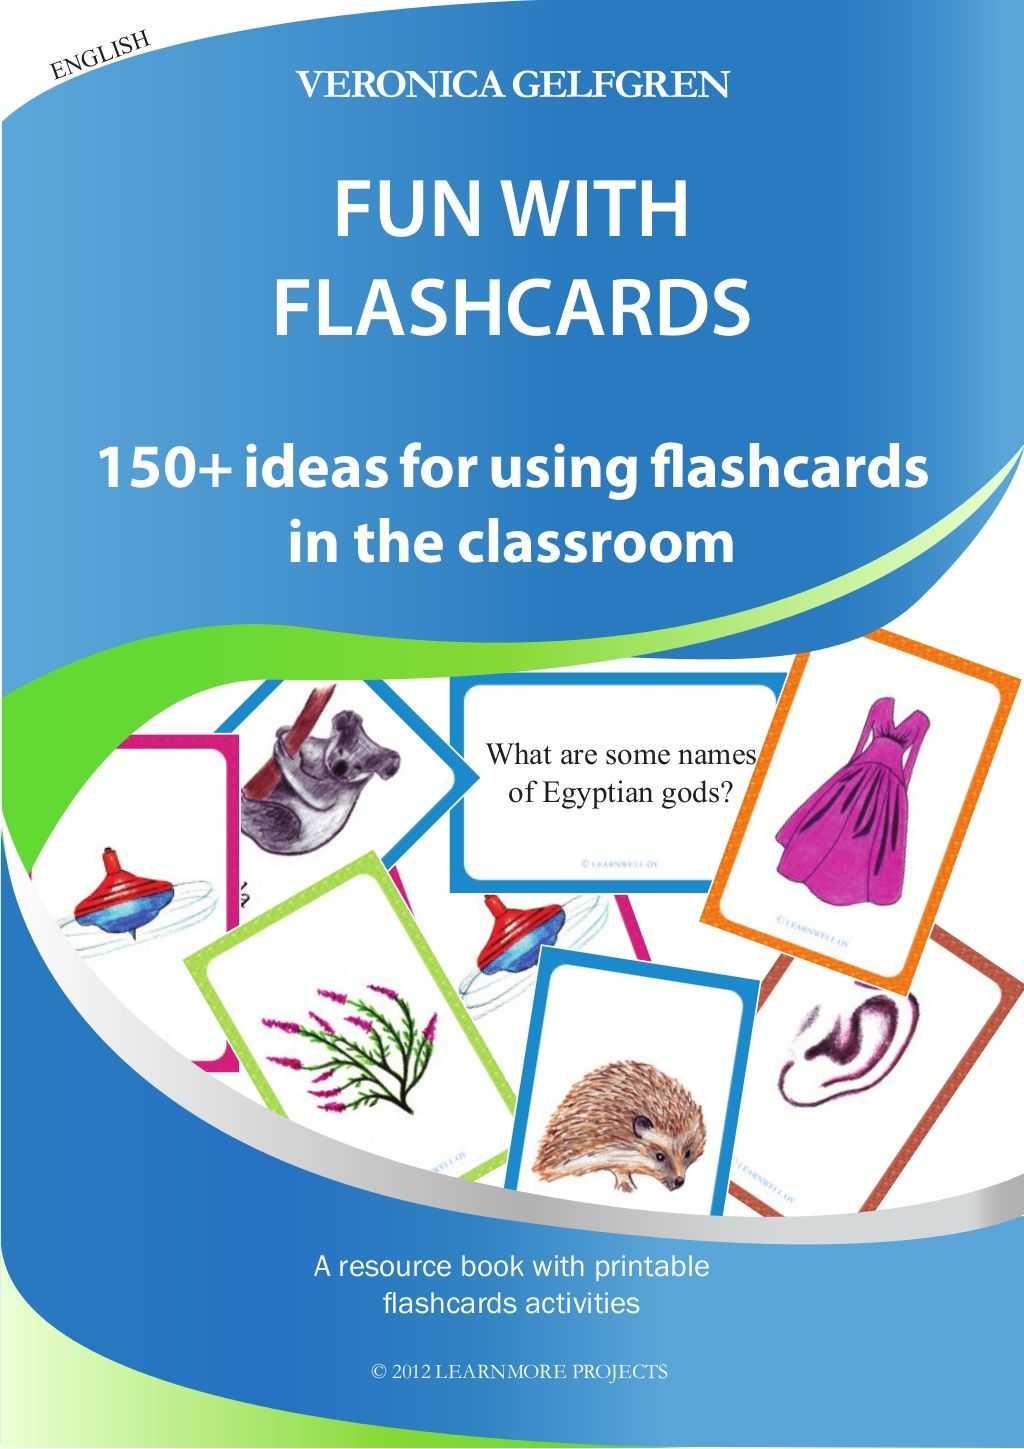 Fun With Flash Cards By Veronica Gelfgren Via Slideshare